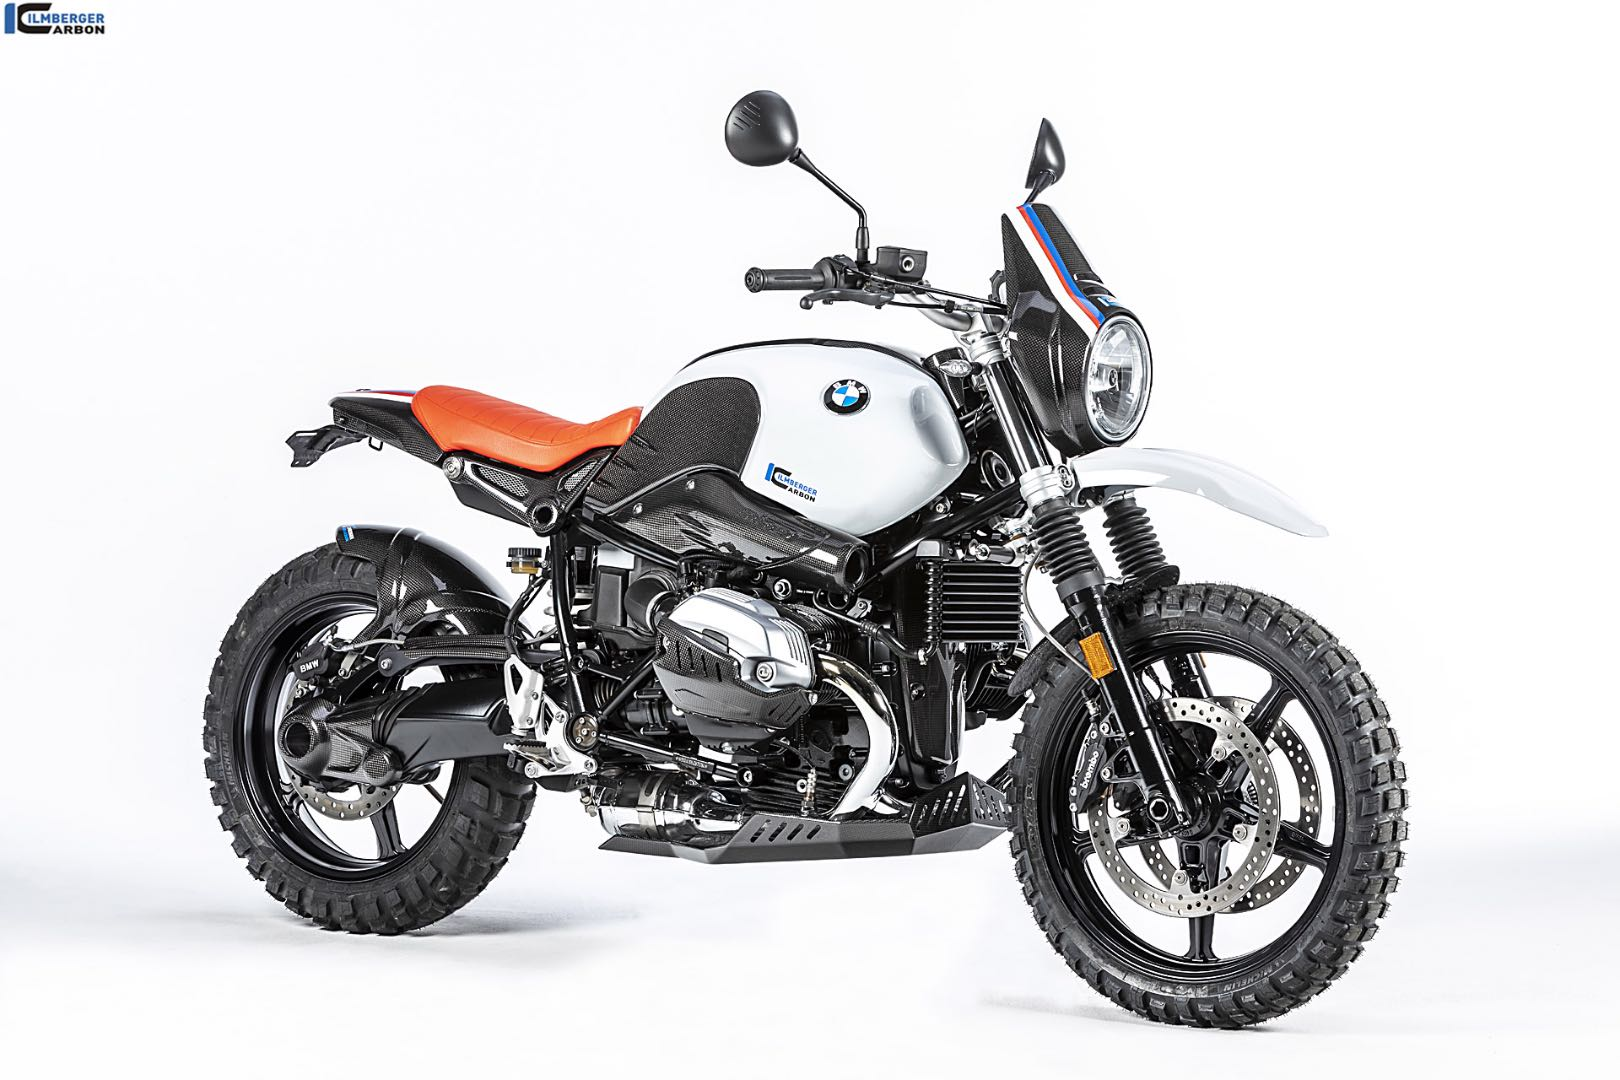 Ilmberger Carbon BMW R nineT Urban GS for sale